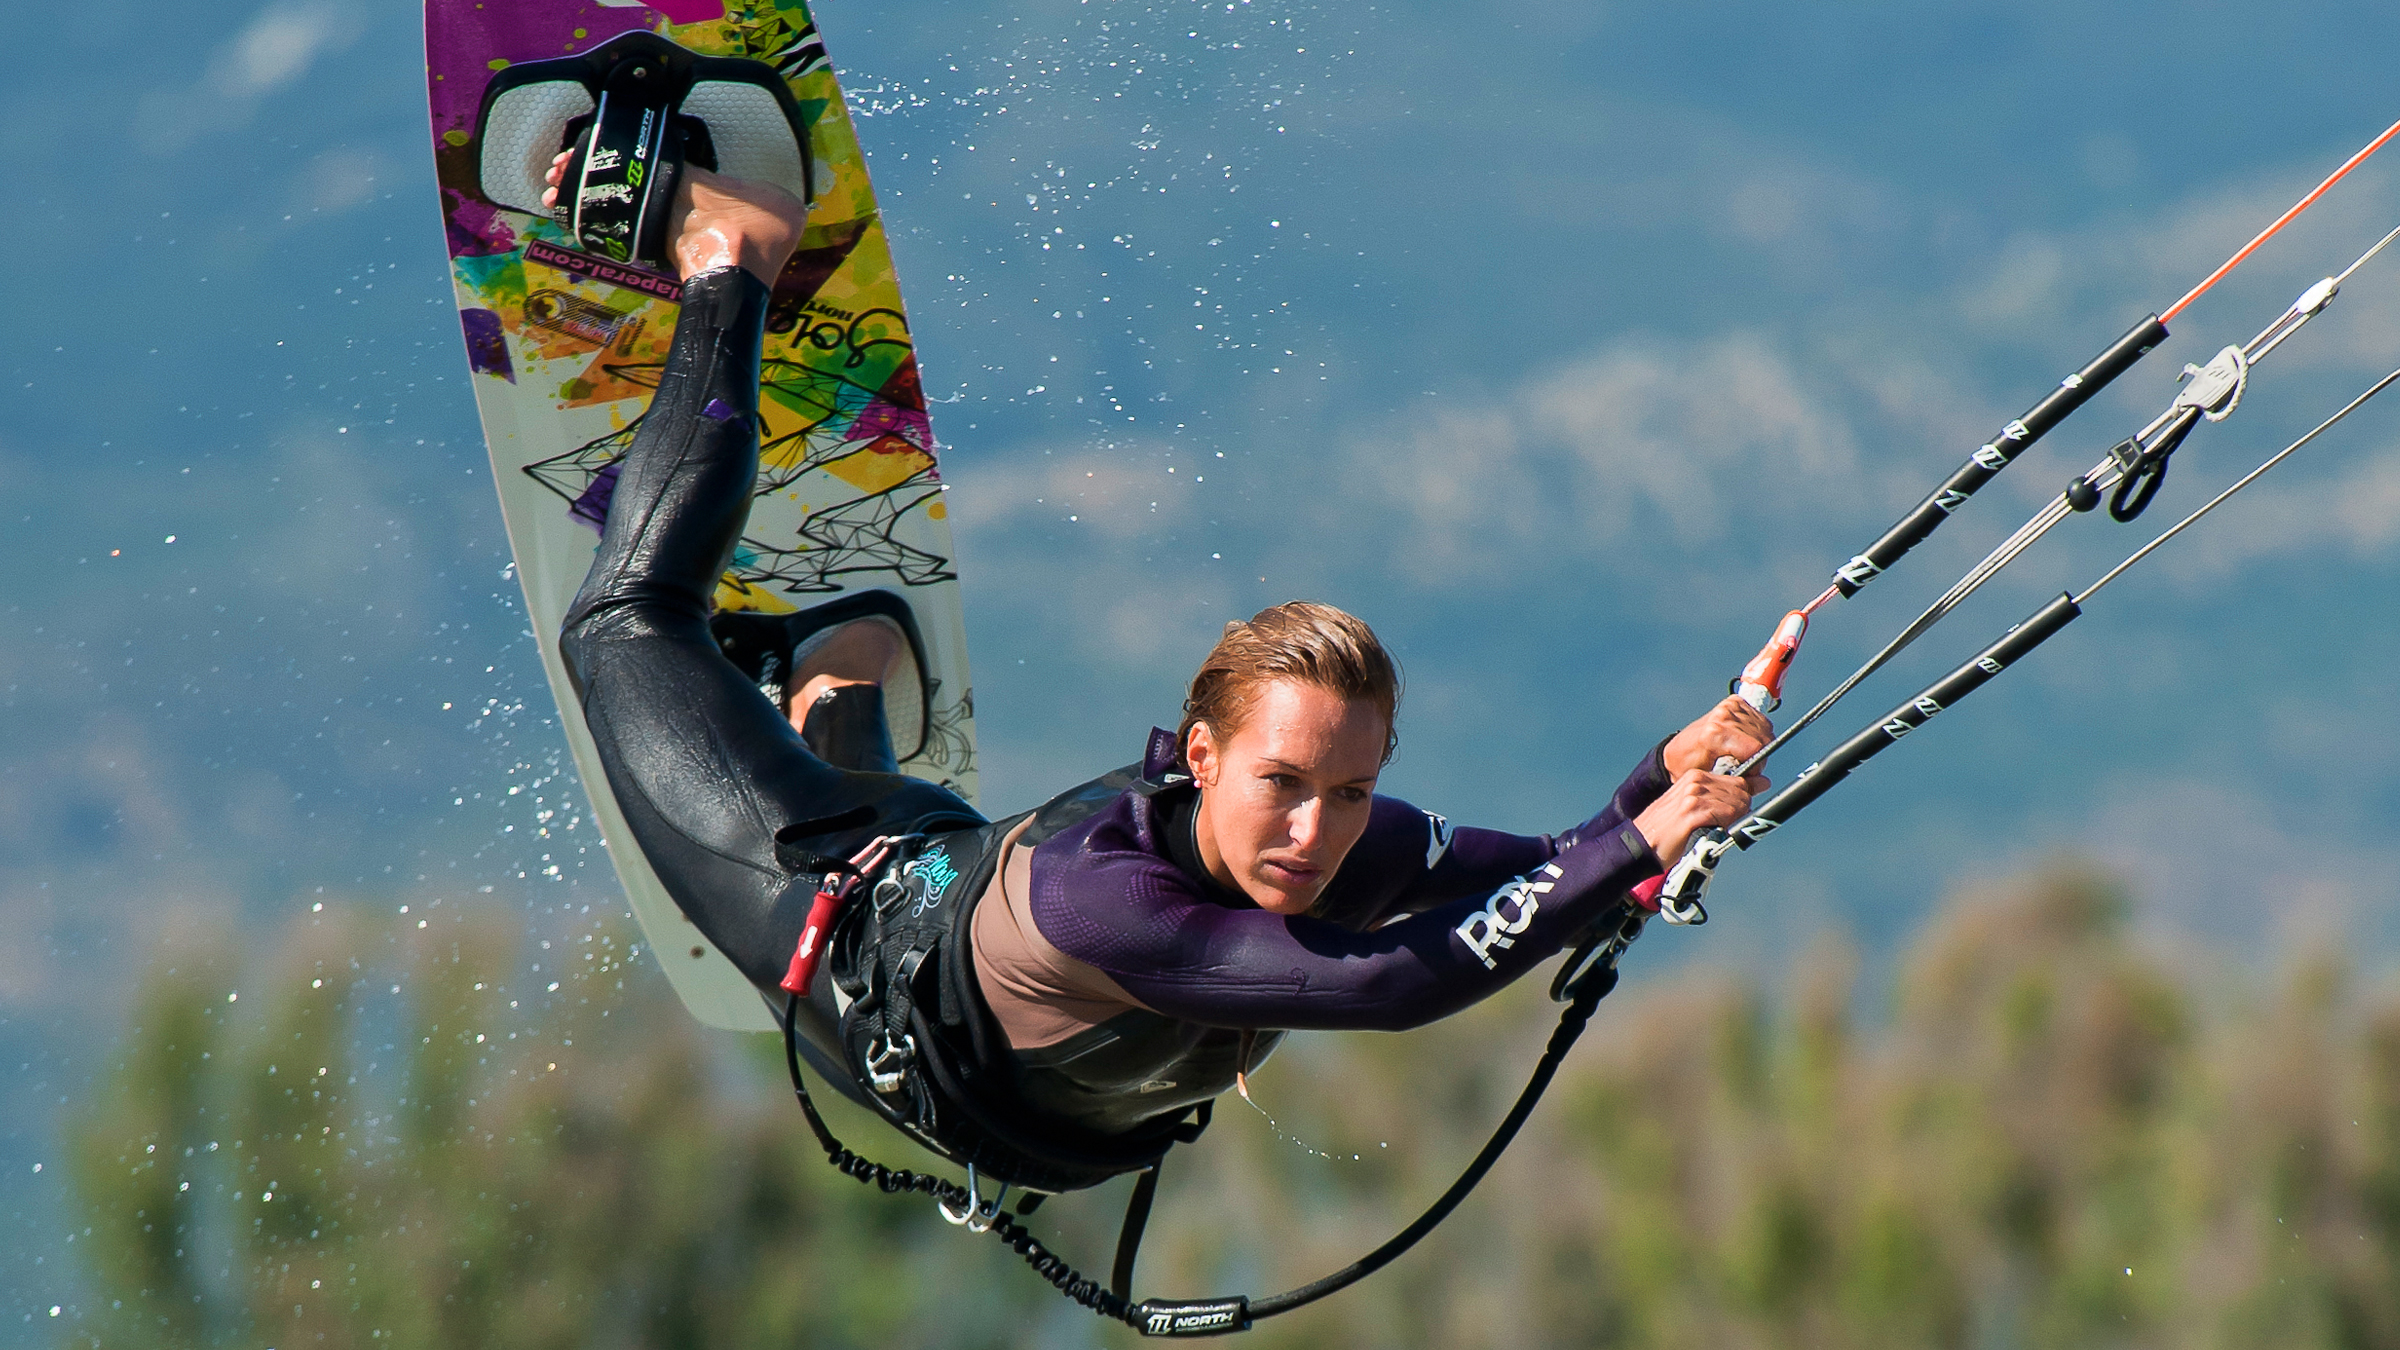 kitesurf wallpaper image - Angela Peral raily into town - in resolution: High Definition - HD 16:9 2400 X 1350